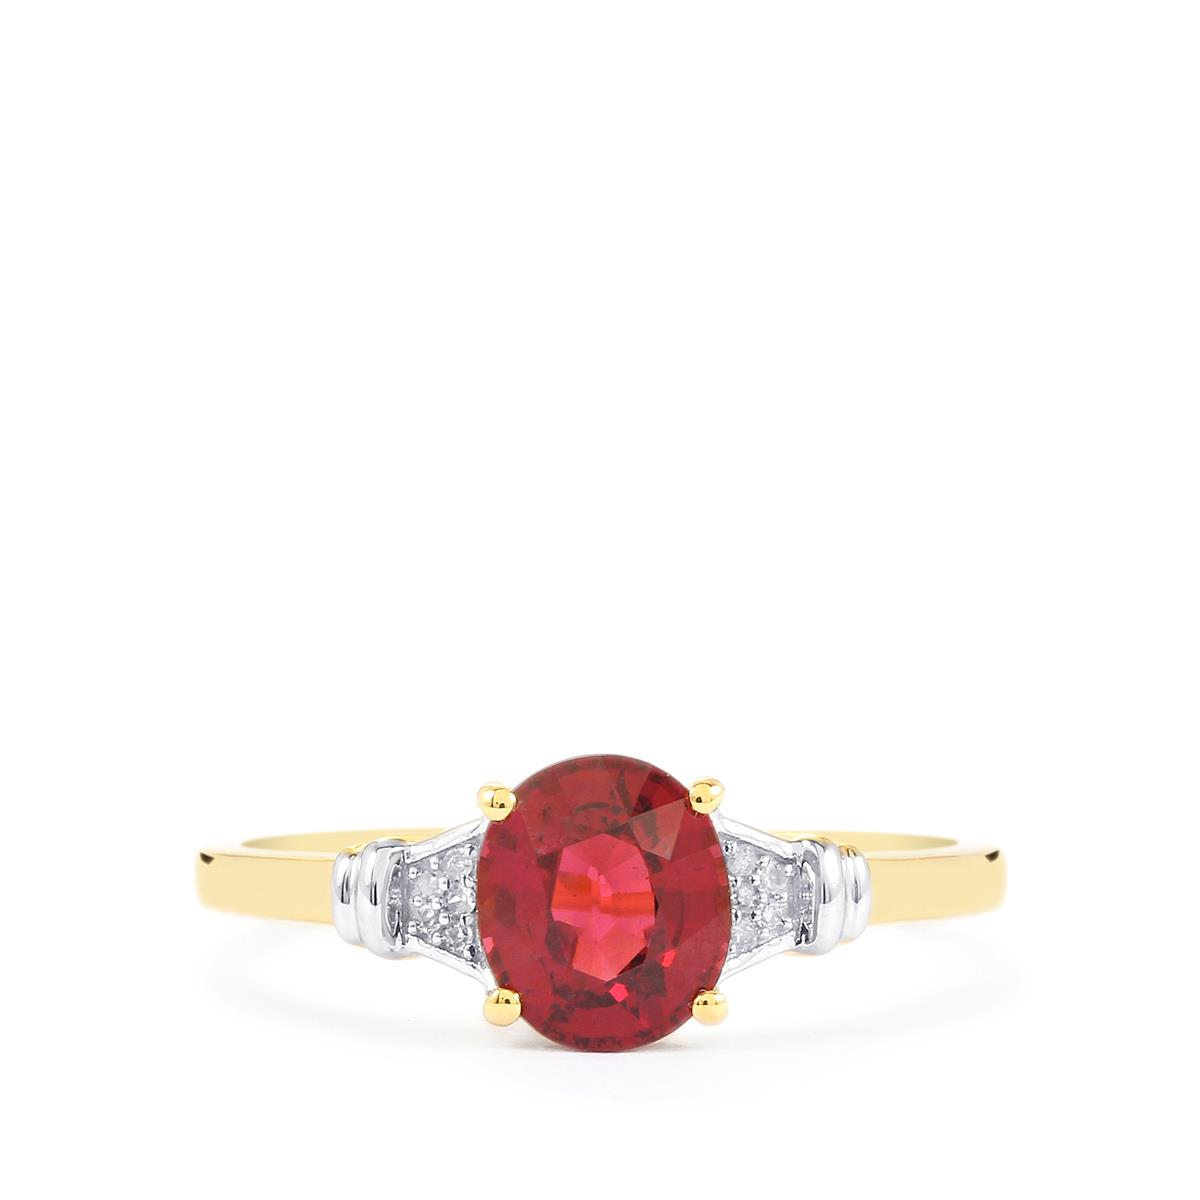 Malawi Garnet Ring with Diamond in 9K Gold 1.58cts